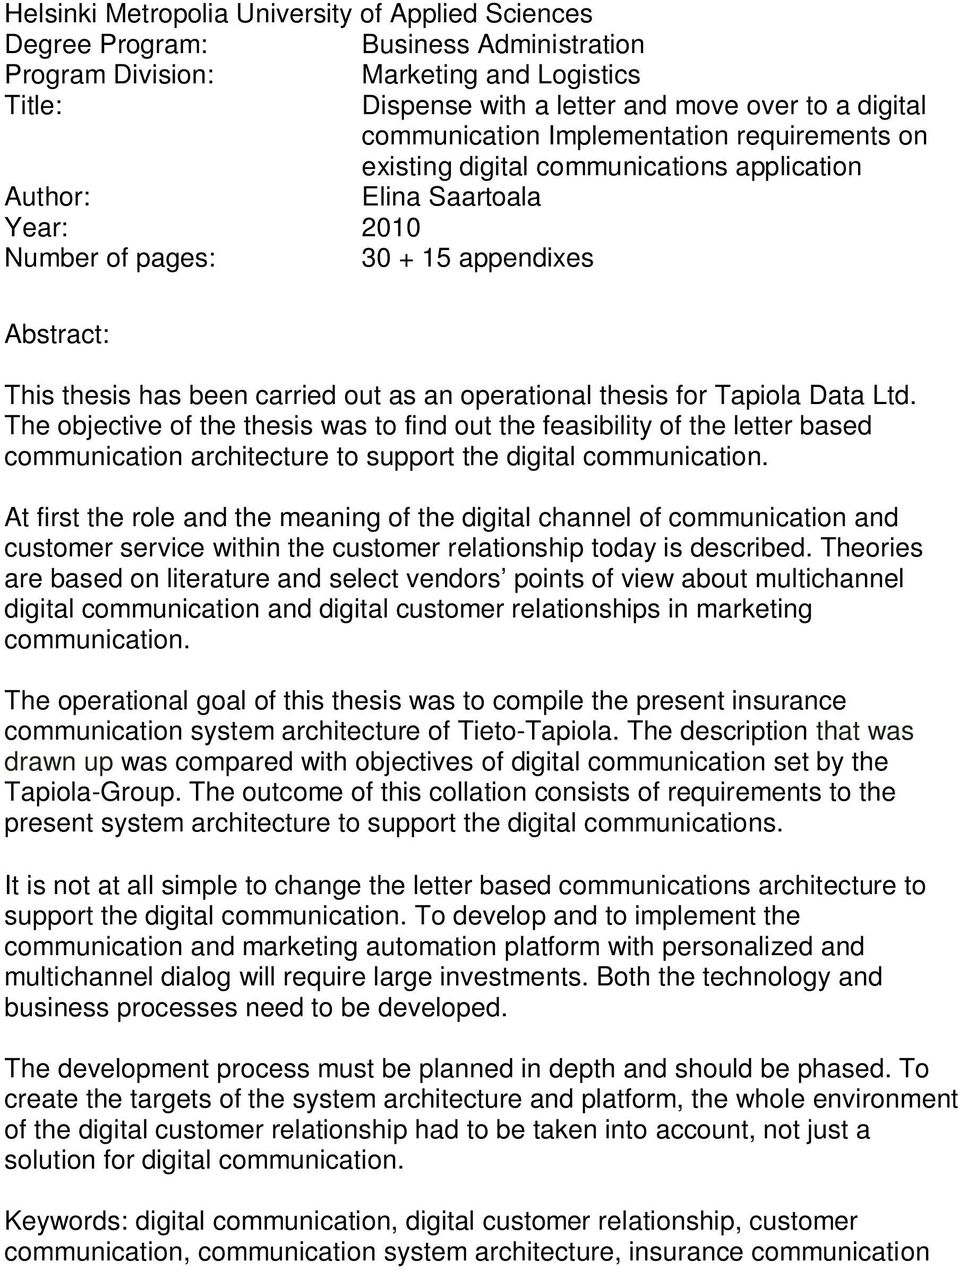 out as an operational thesis for Tapiola Data Ltd. The objective of the thesis was to find out the feasibility of the letter based communication architecture to support the digital communication.